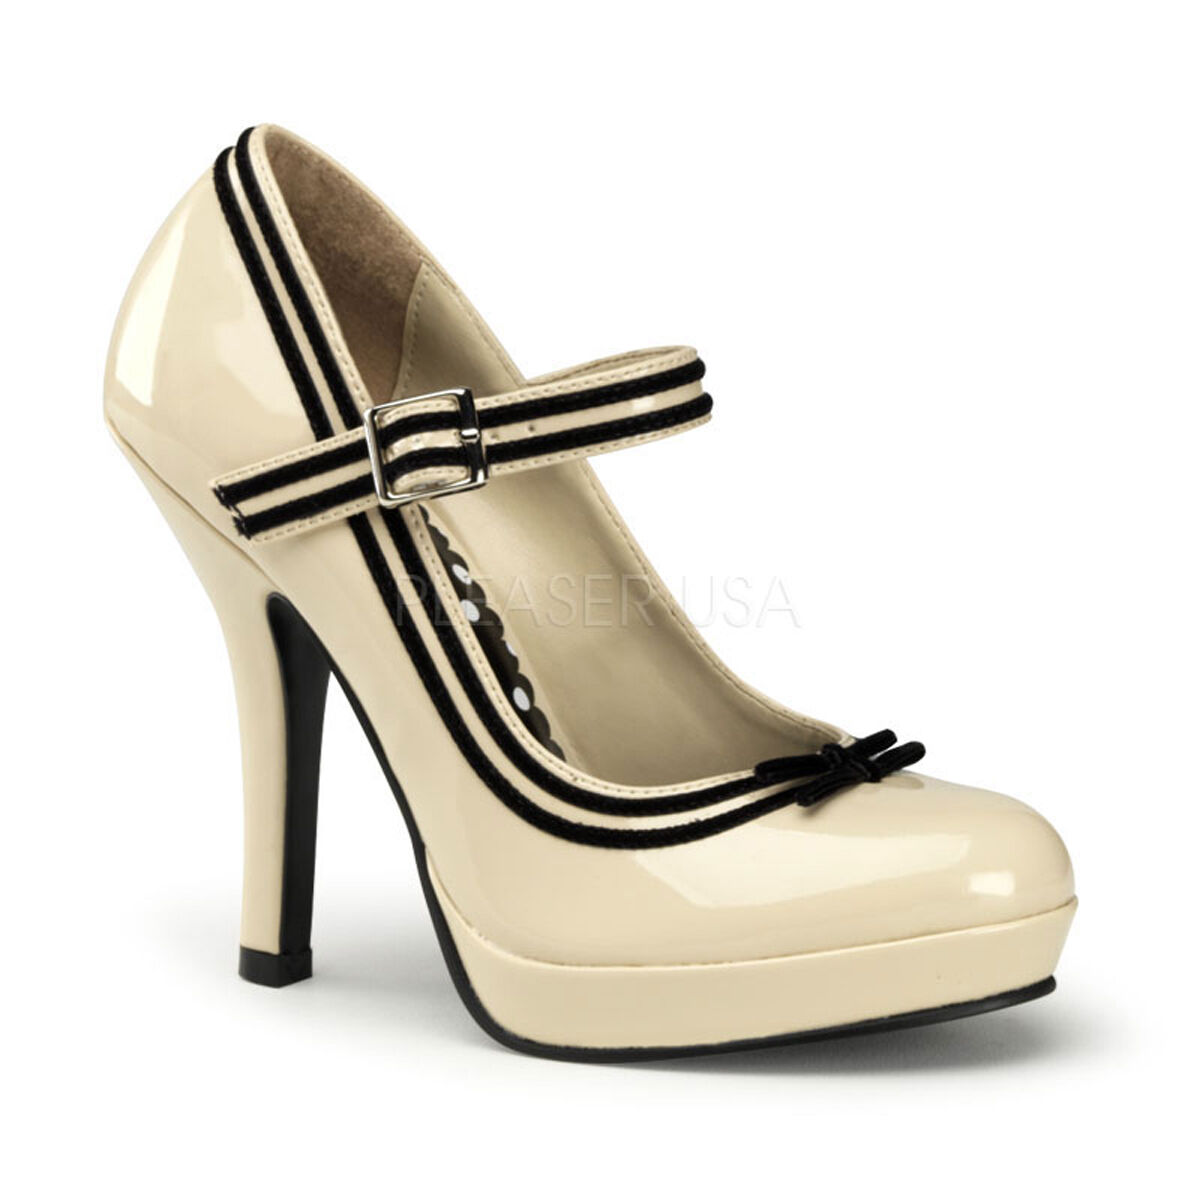 Cream Nude Vintage 1940s Army Pinup Heels Halloween Costume Schuhes Womans